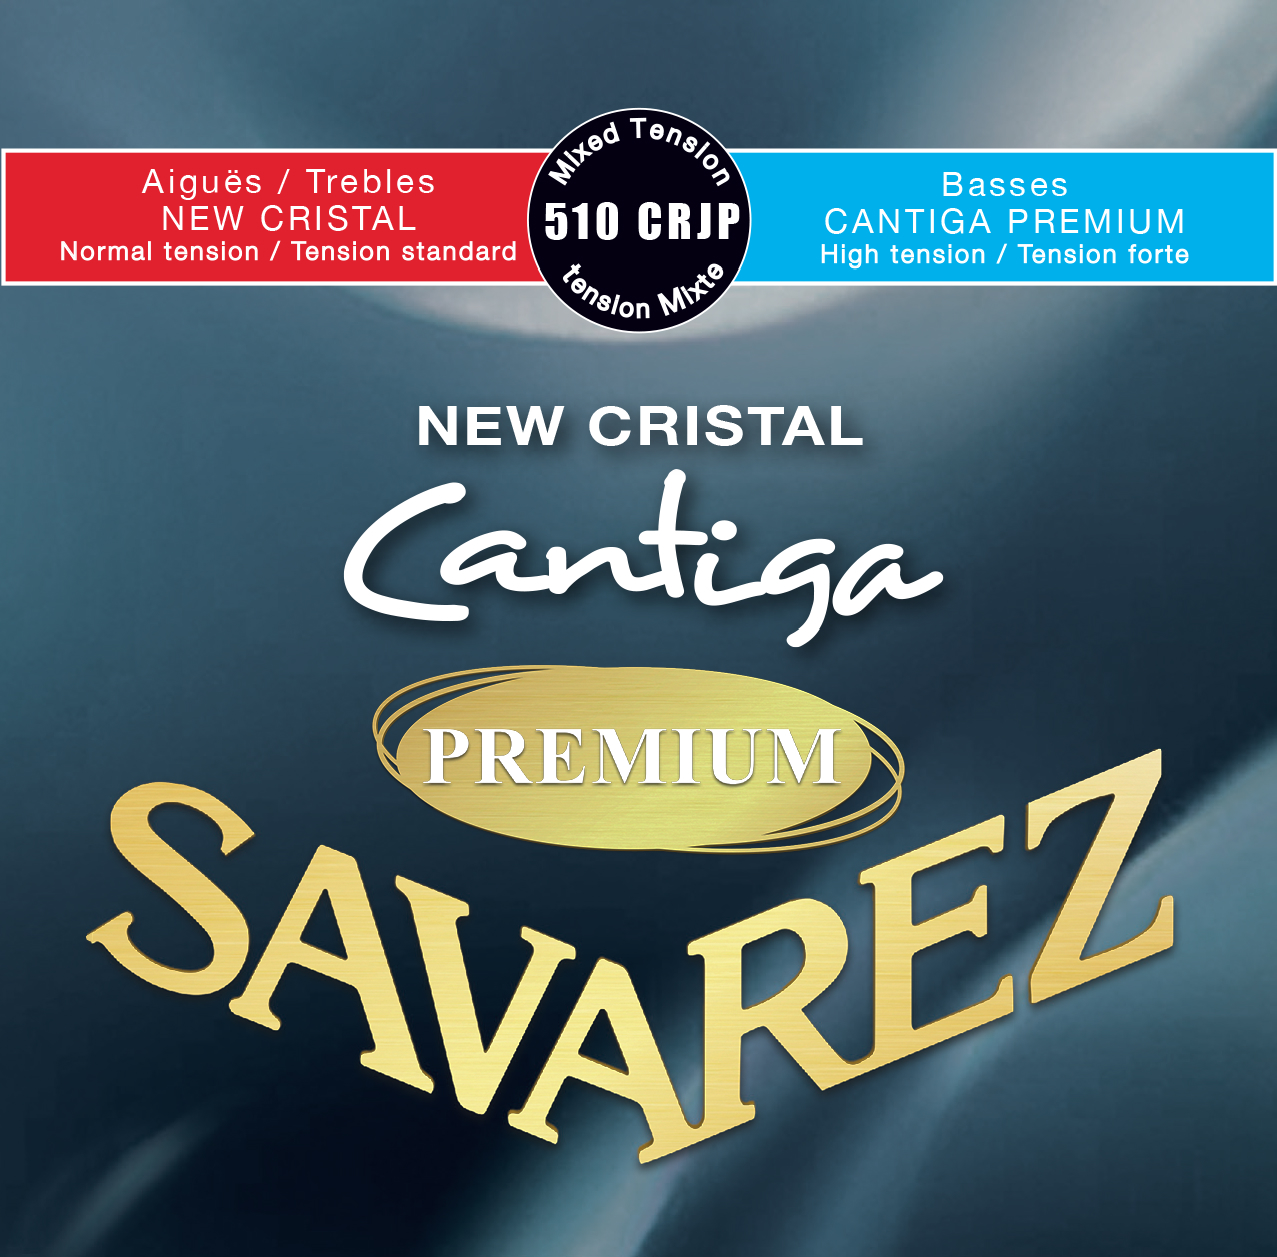 NEW CRISTAL CANTIGA PREMIUM TENSION MIXTE 510CRJP